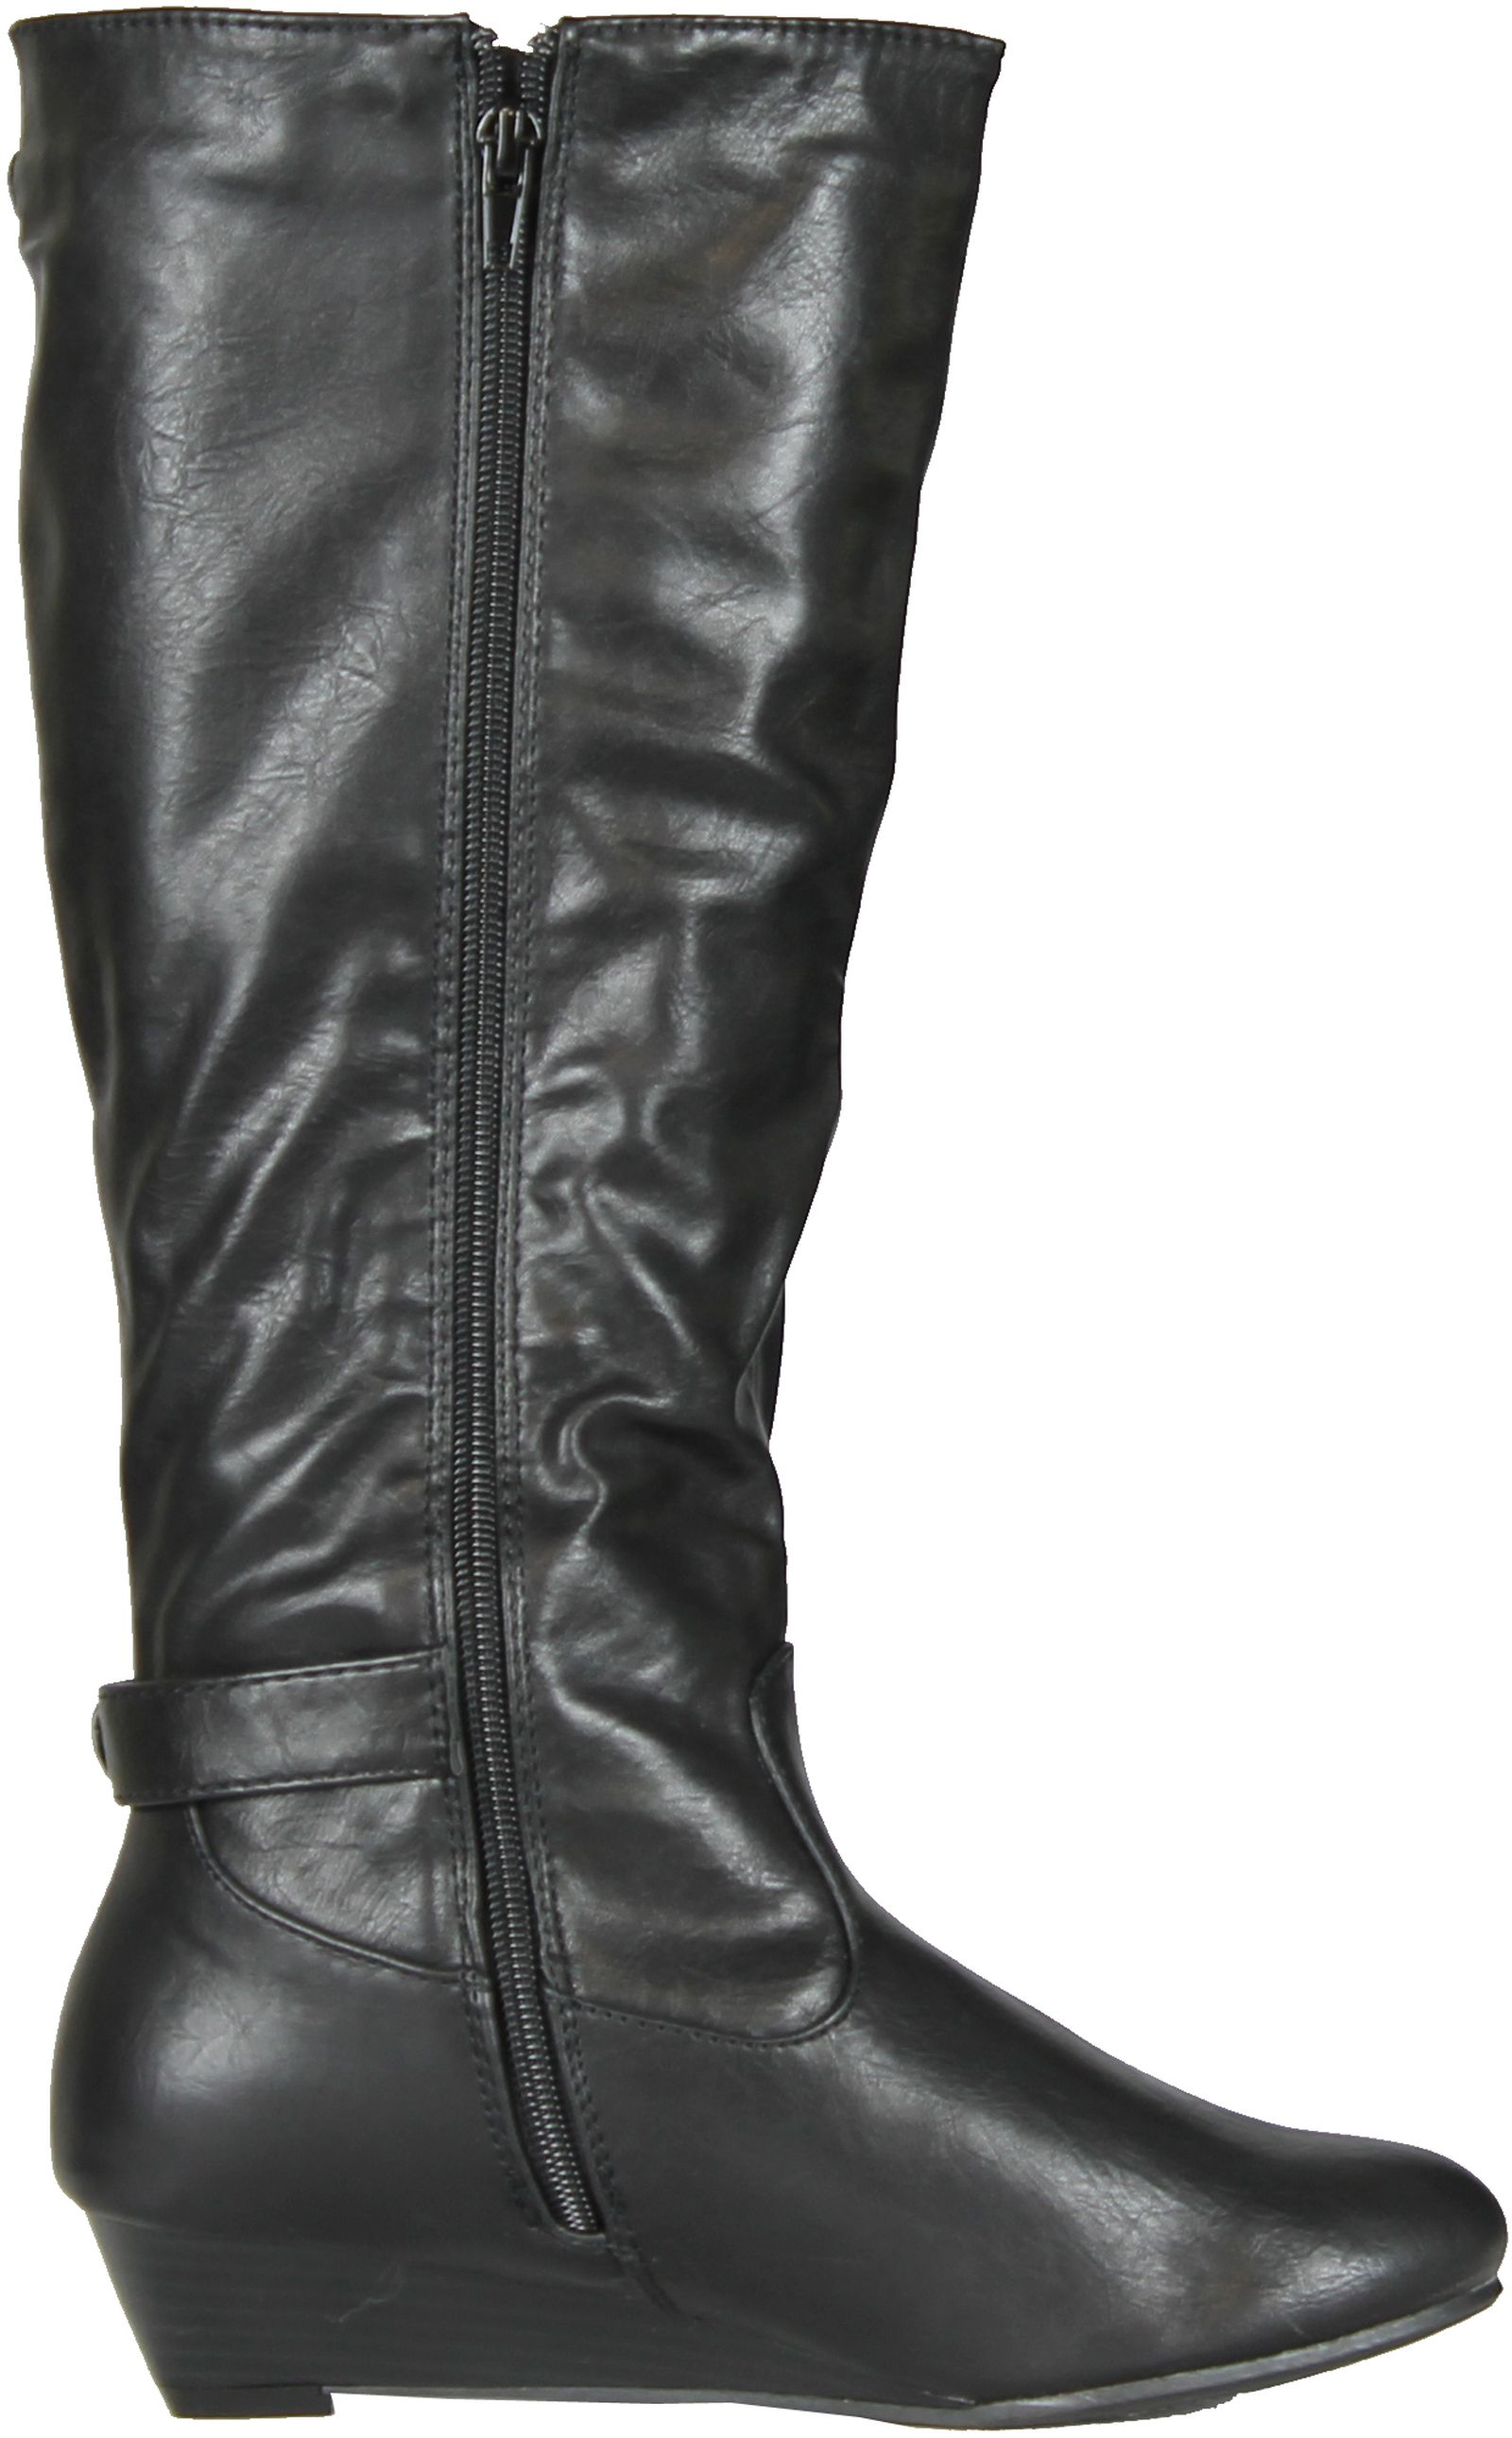 Bamboo Women's Tamara-63 Riding Boots | eBay